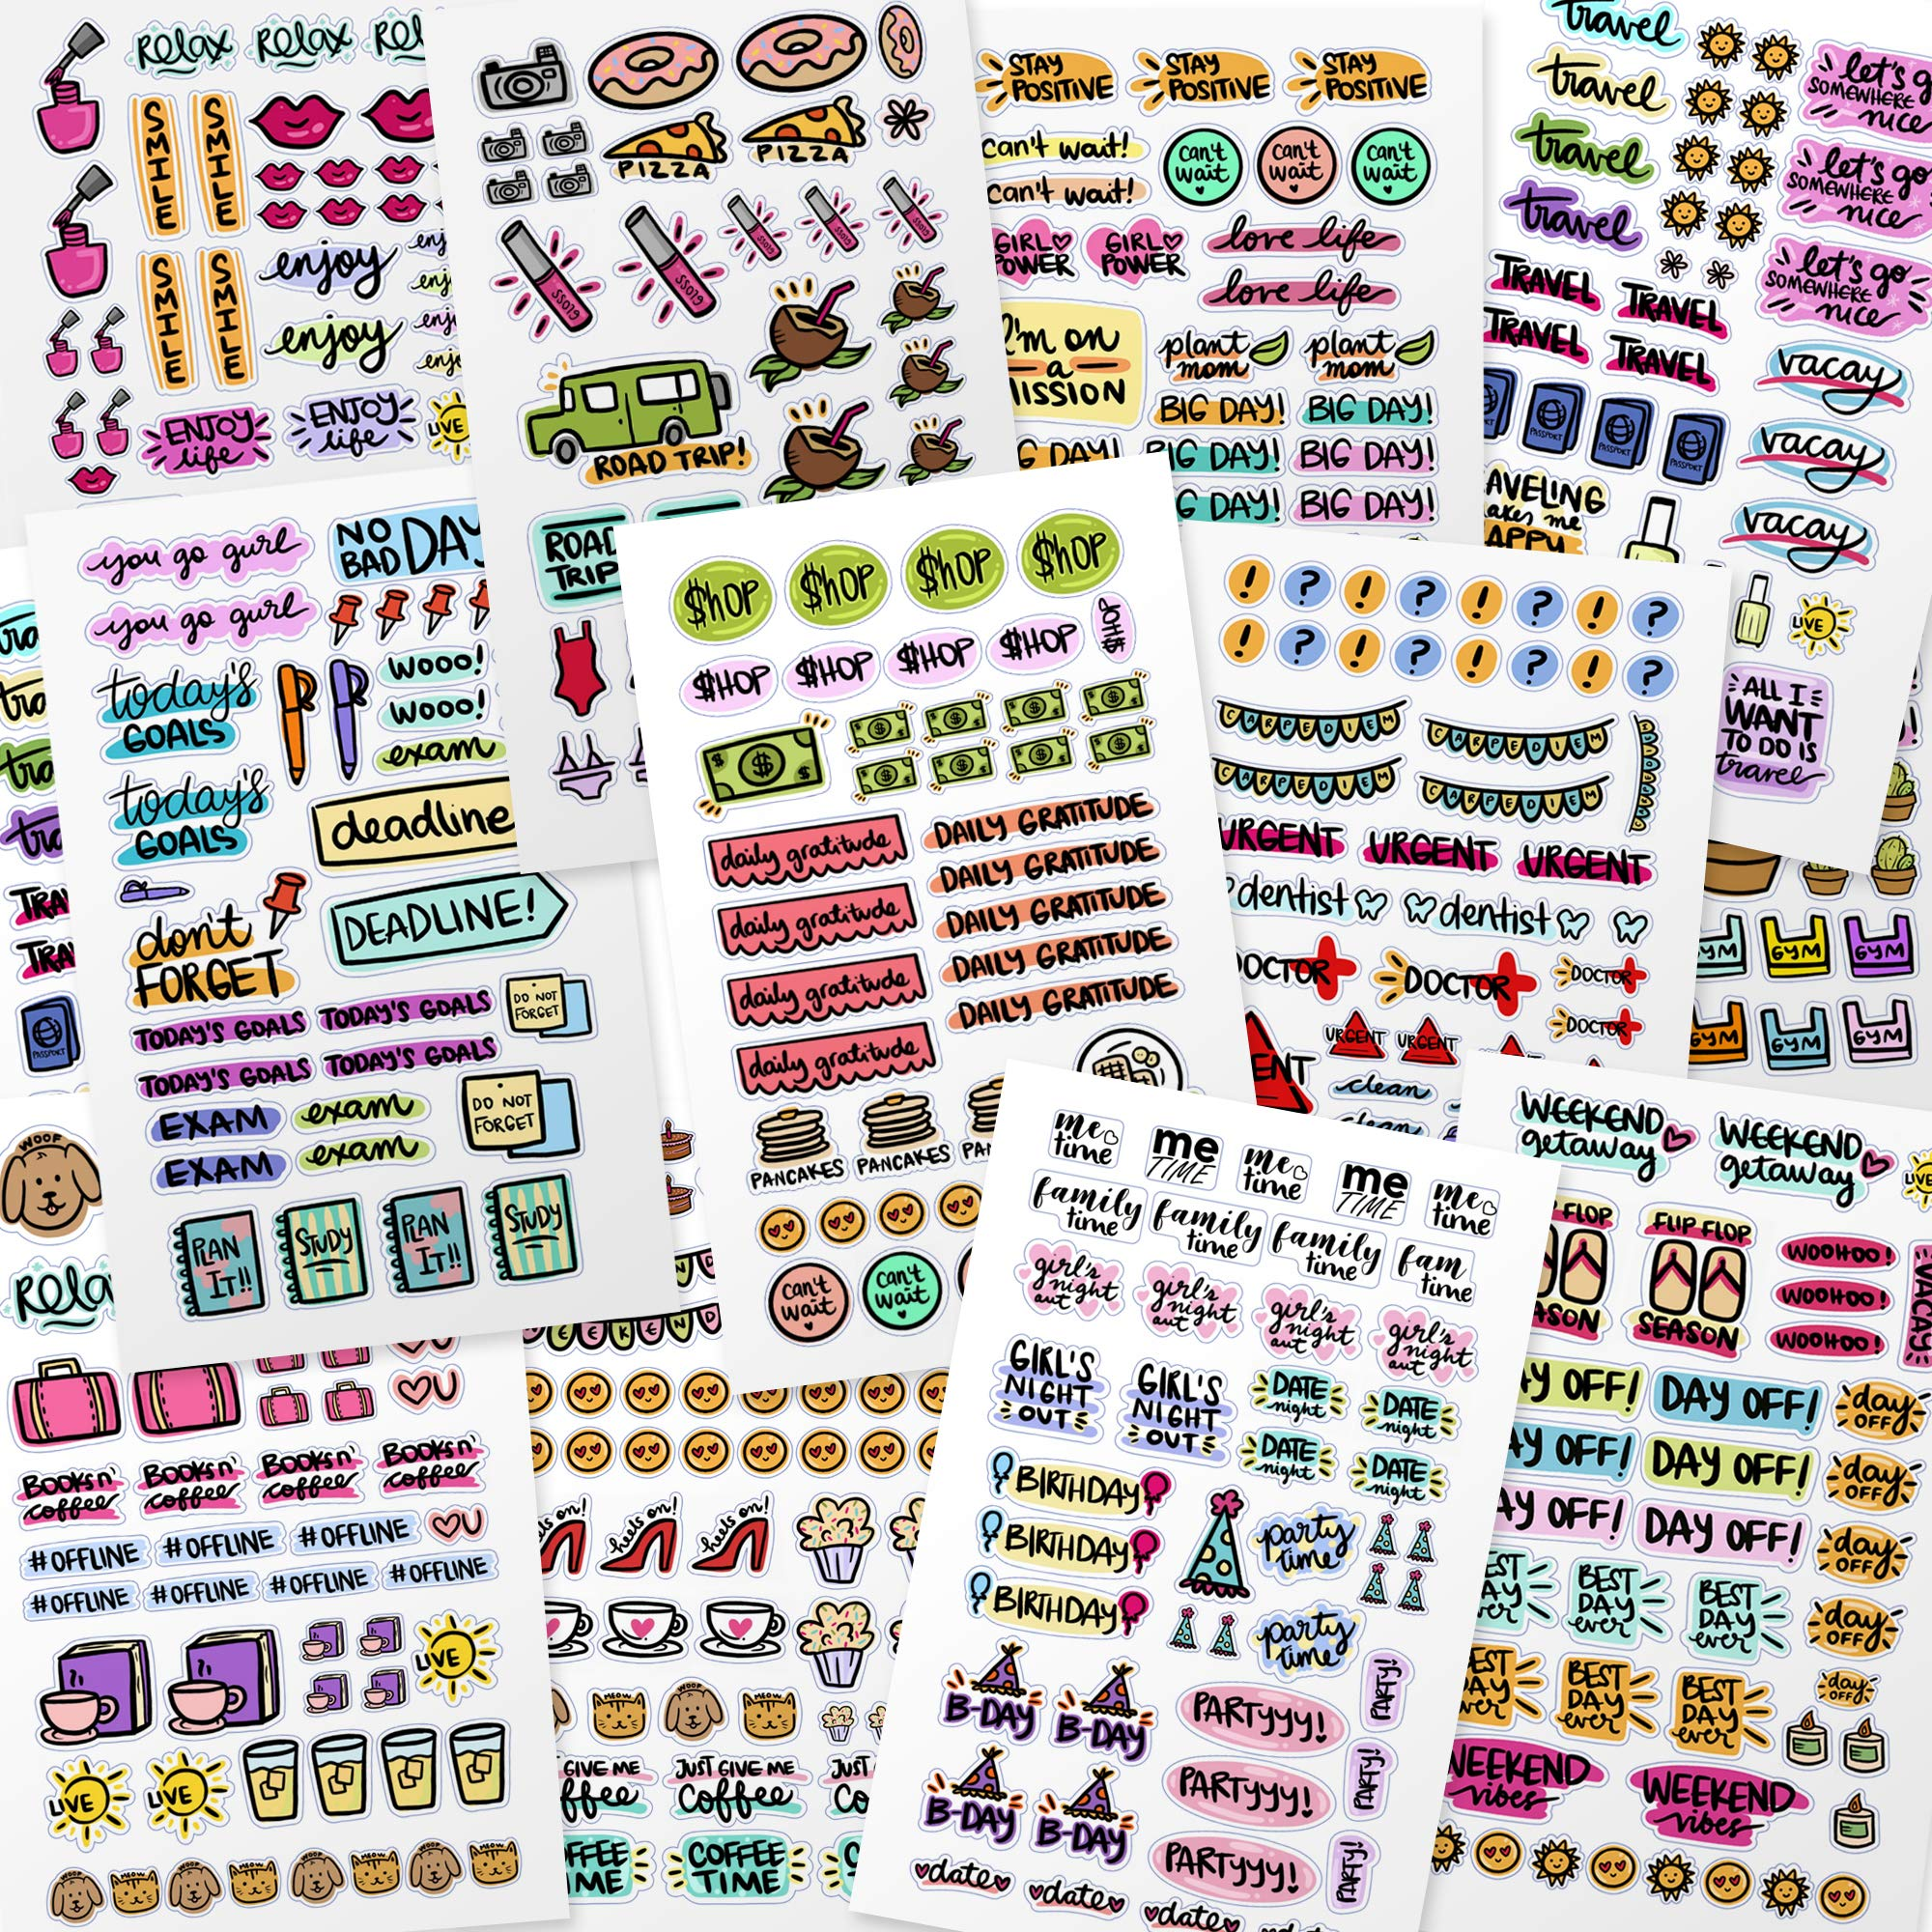 Planner Stickers - Value Pack of Productivity, Inspirational, Holiday, Fitness, Teacher Stickers for Daily, Weekly, Monthly Planner, Journal, Calendar, Agenda by Savvy Bee (22)